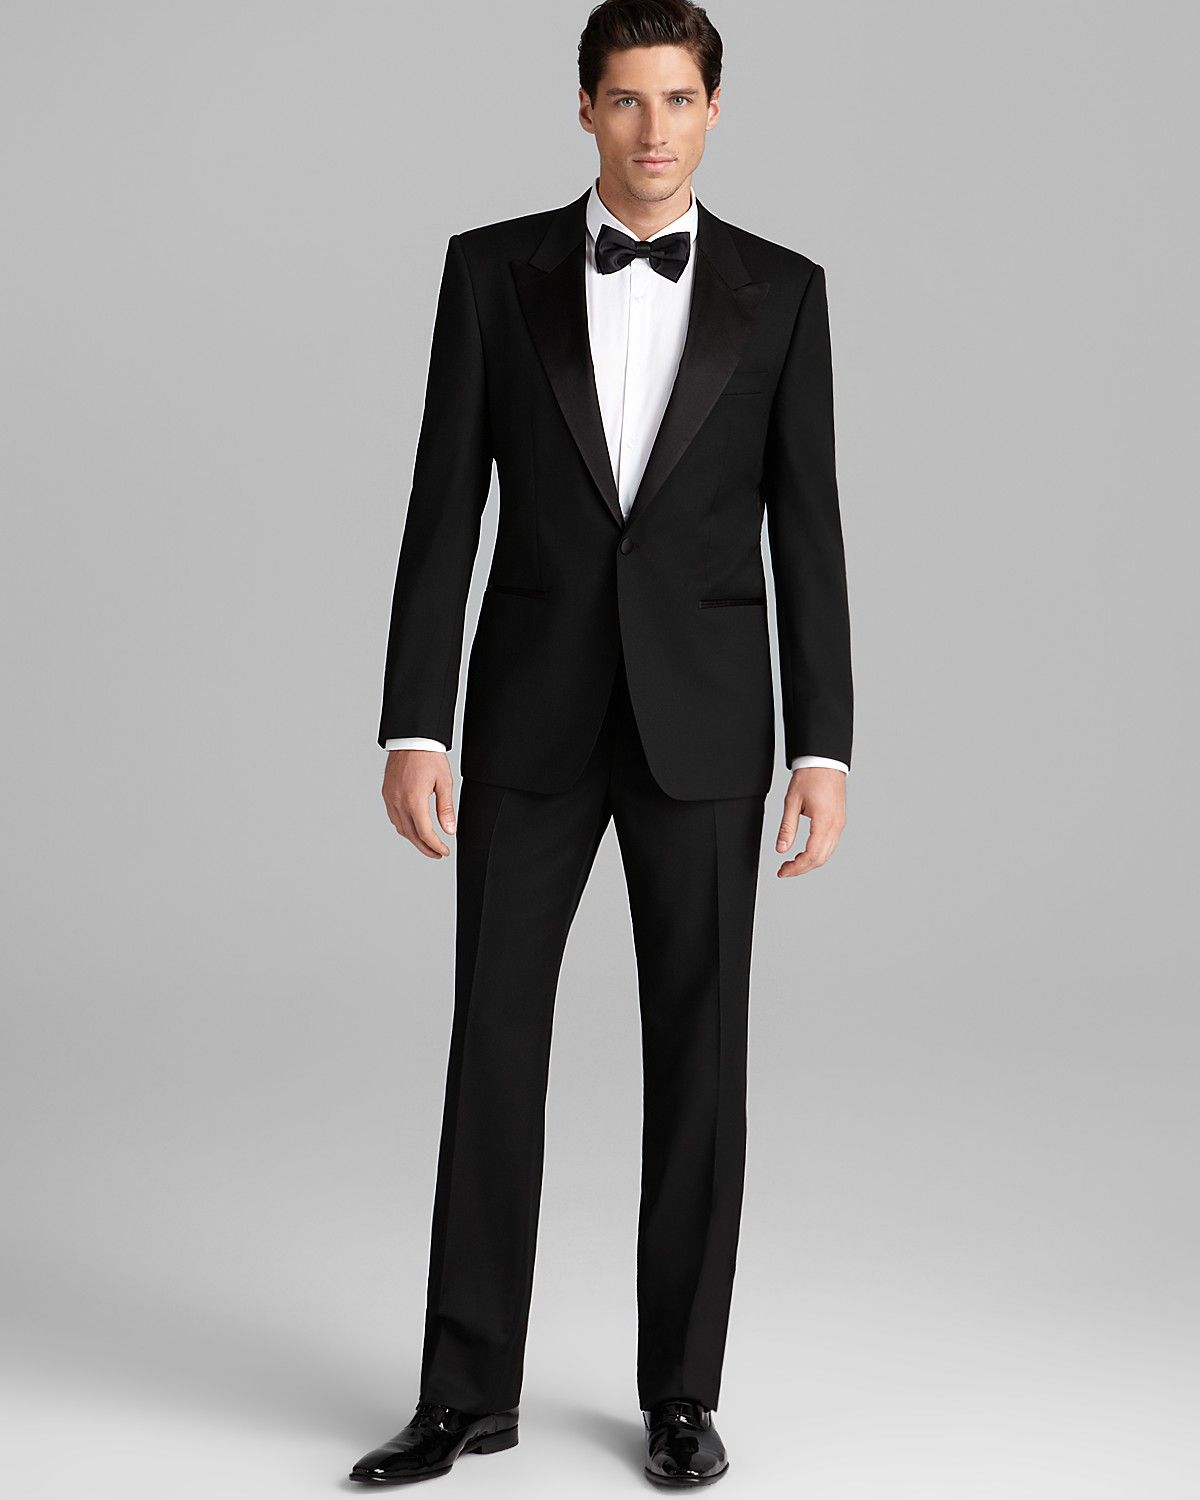 soir e black tie tenue de soir e cocktail menswear pinterest suits tuxedo et tuxedo for men. Black Bedroom Furniture Sets. Home Design Ideas